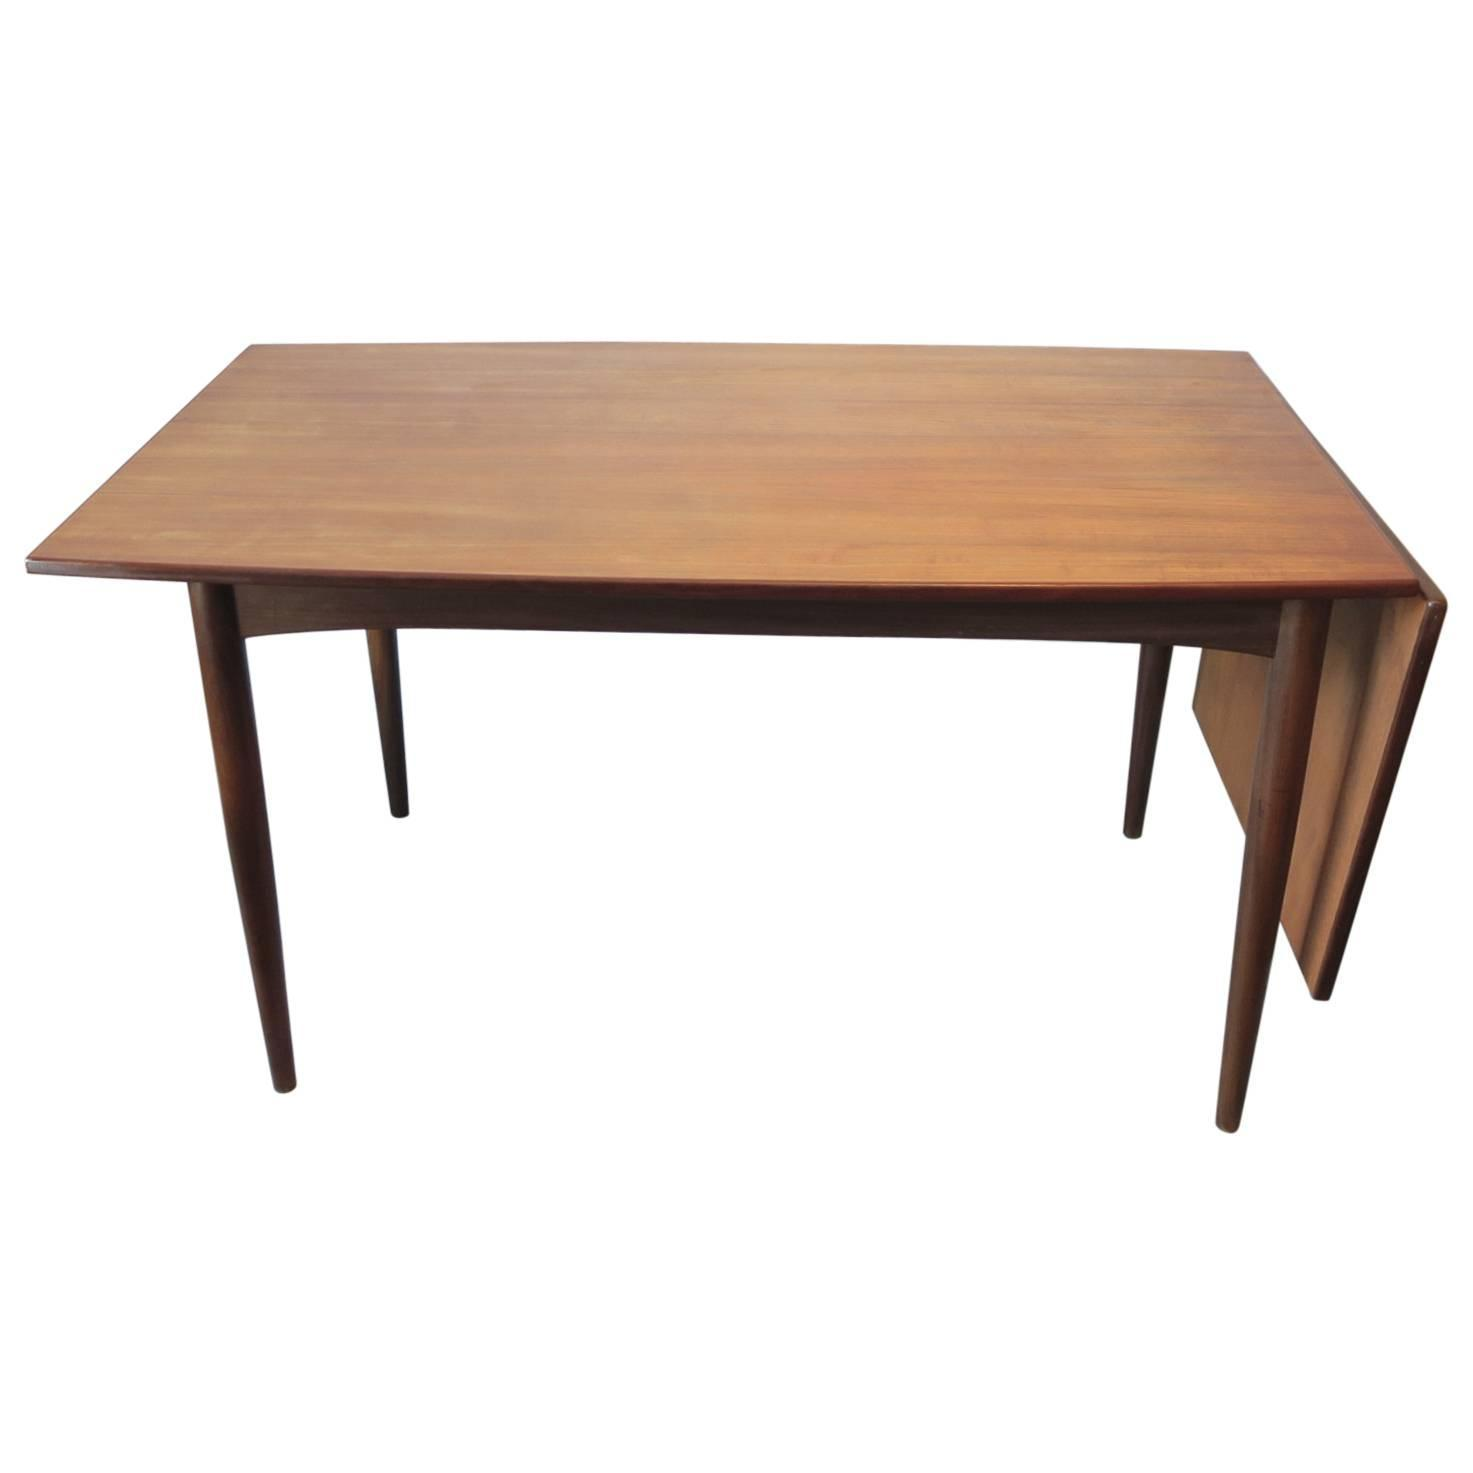 Unusual curved danish teak dining table with sliding top for Unusual dining tables for sale